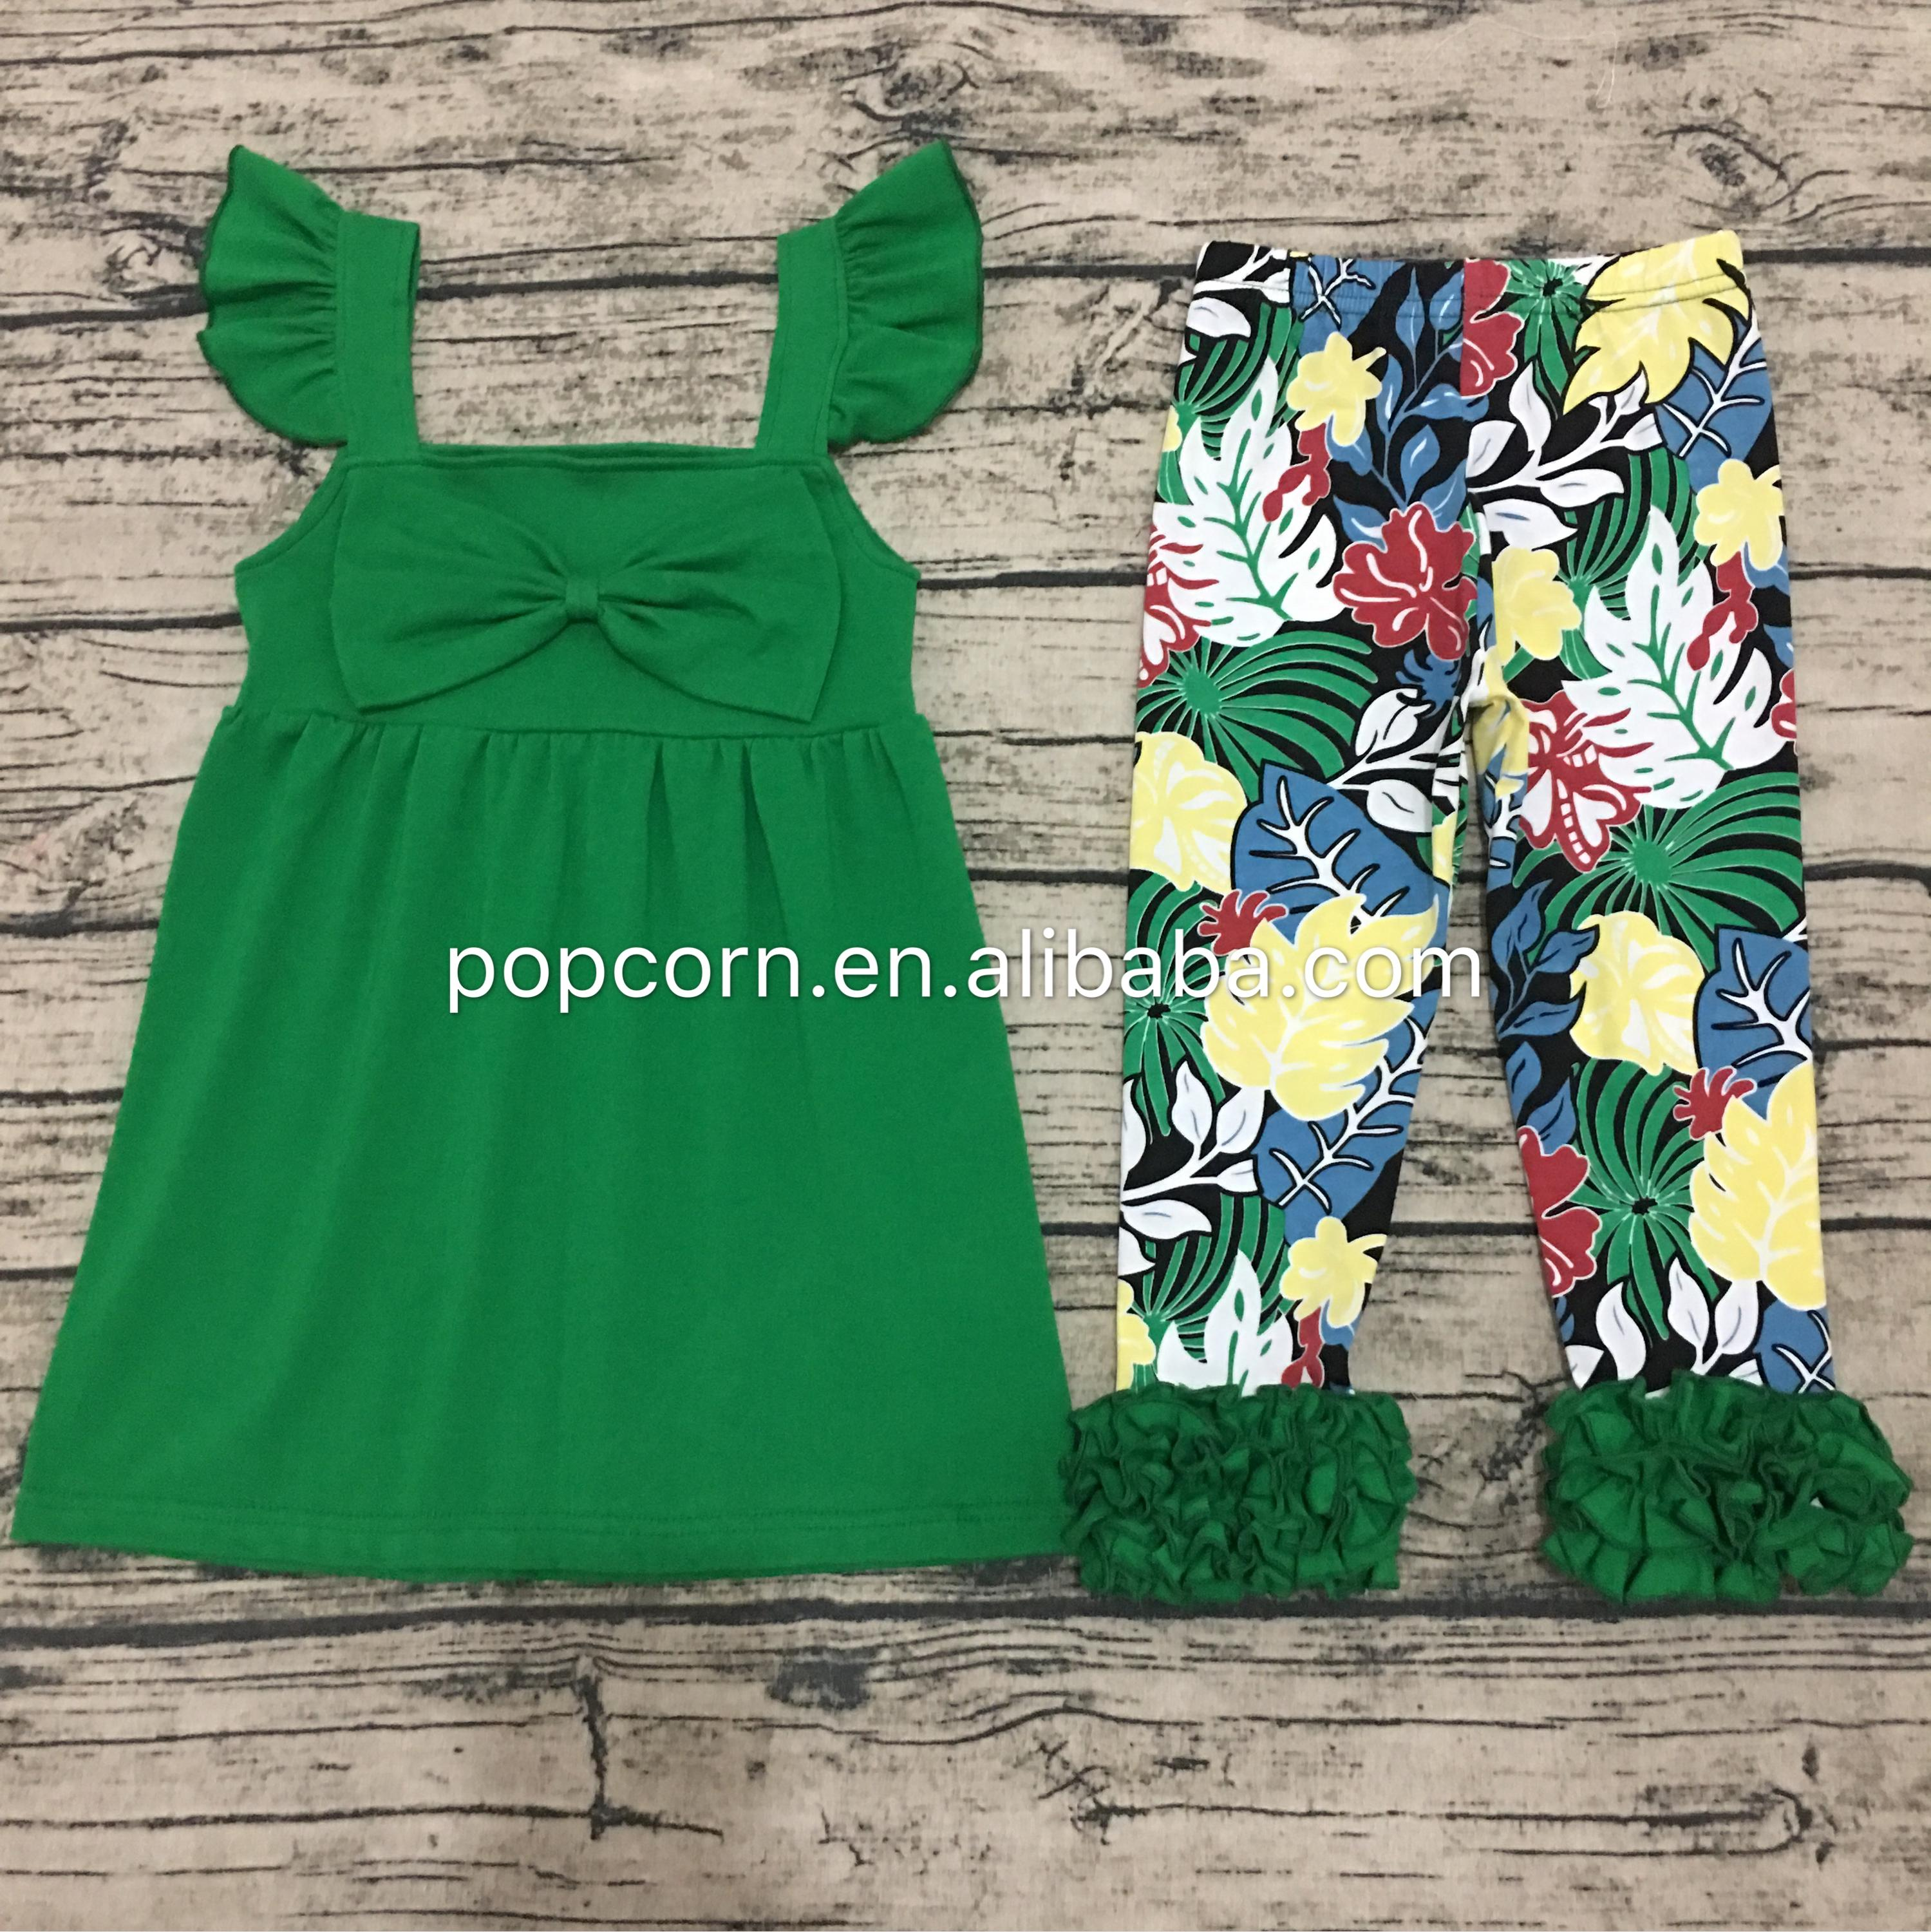 Ruffle Baby Clothes Wholesale Boutique Childrens Solid Color Ruffle